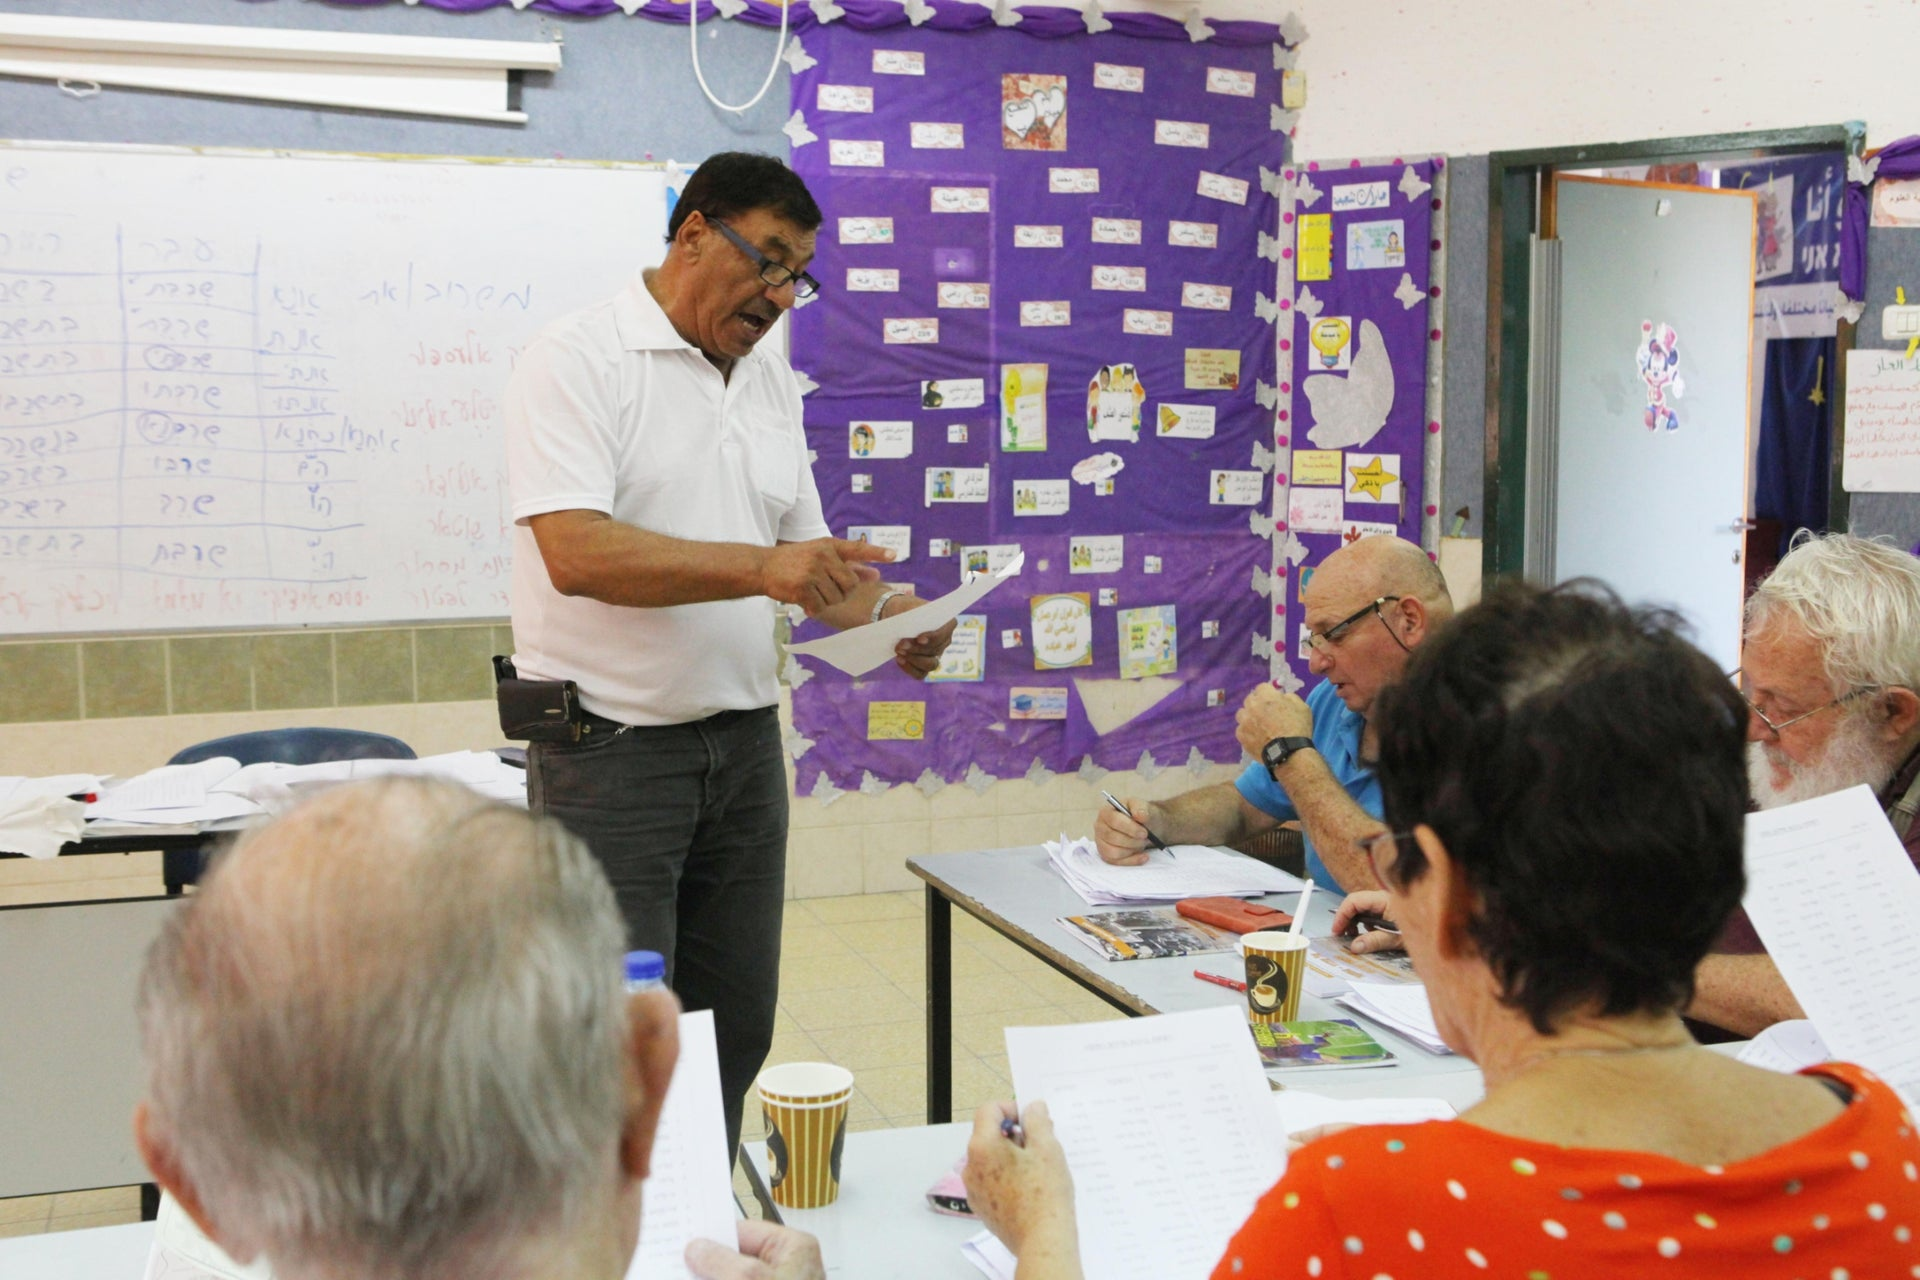 Ishak Abu-Hamad teaching his students during the program in Drijat. According to a recent study, only 8.6 percent of Jewish-Israeli adults have some knowledge of Arabic.